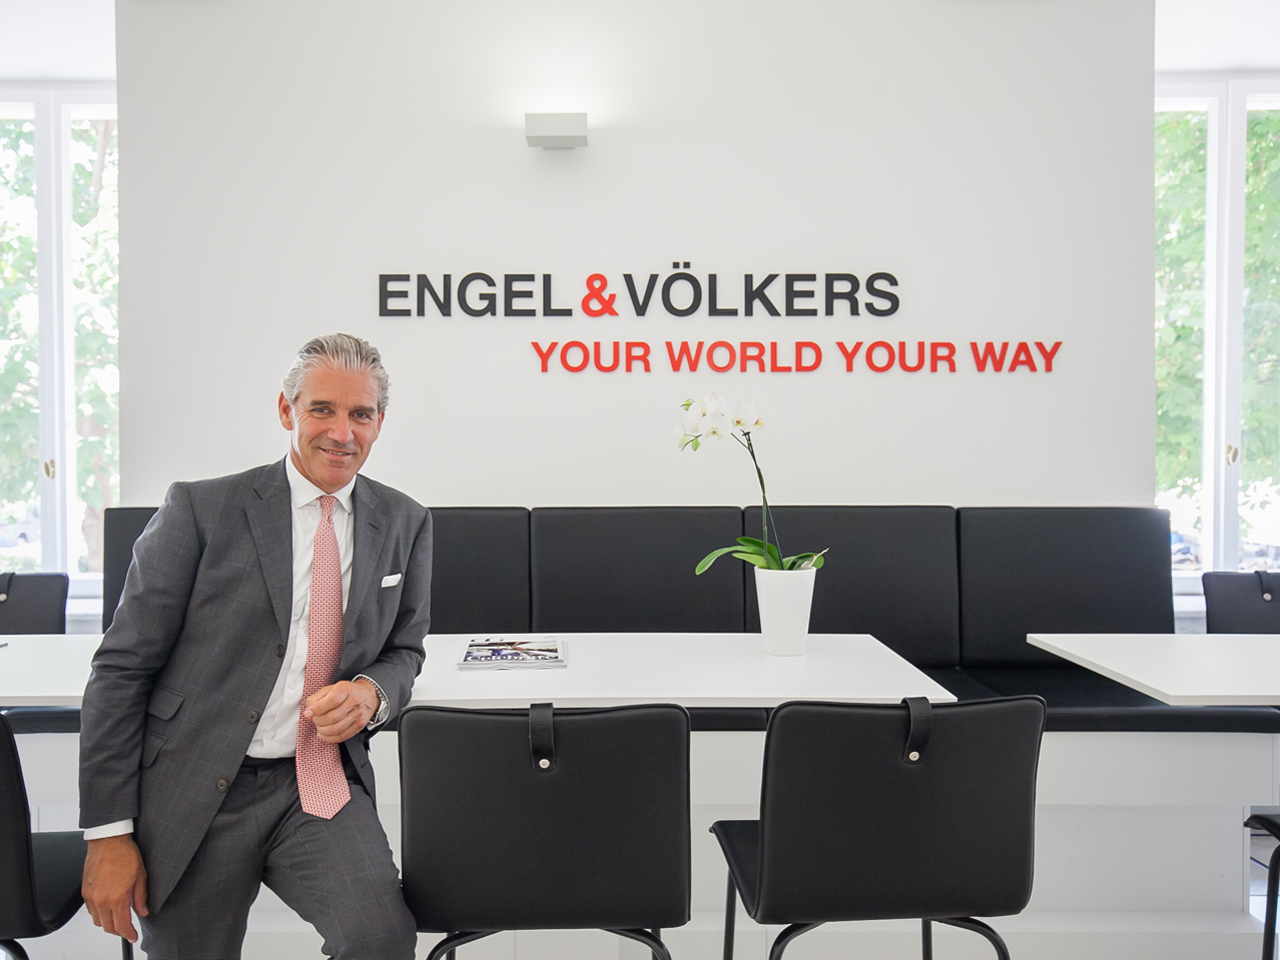 40 years of Engel & Völkers - the road to becoming a global brand